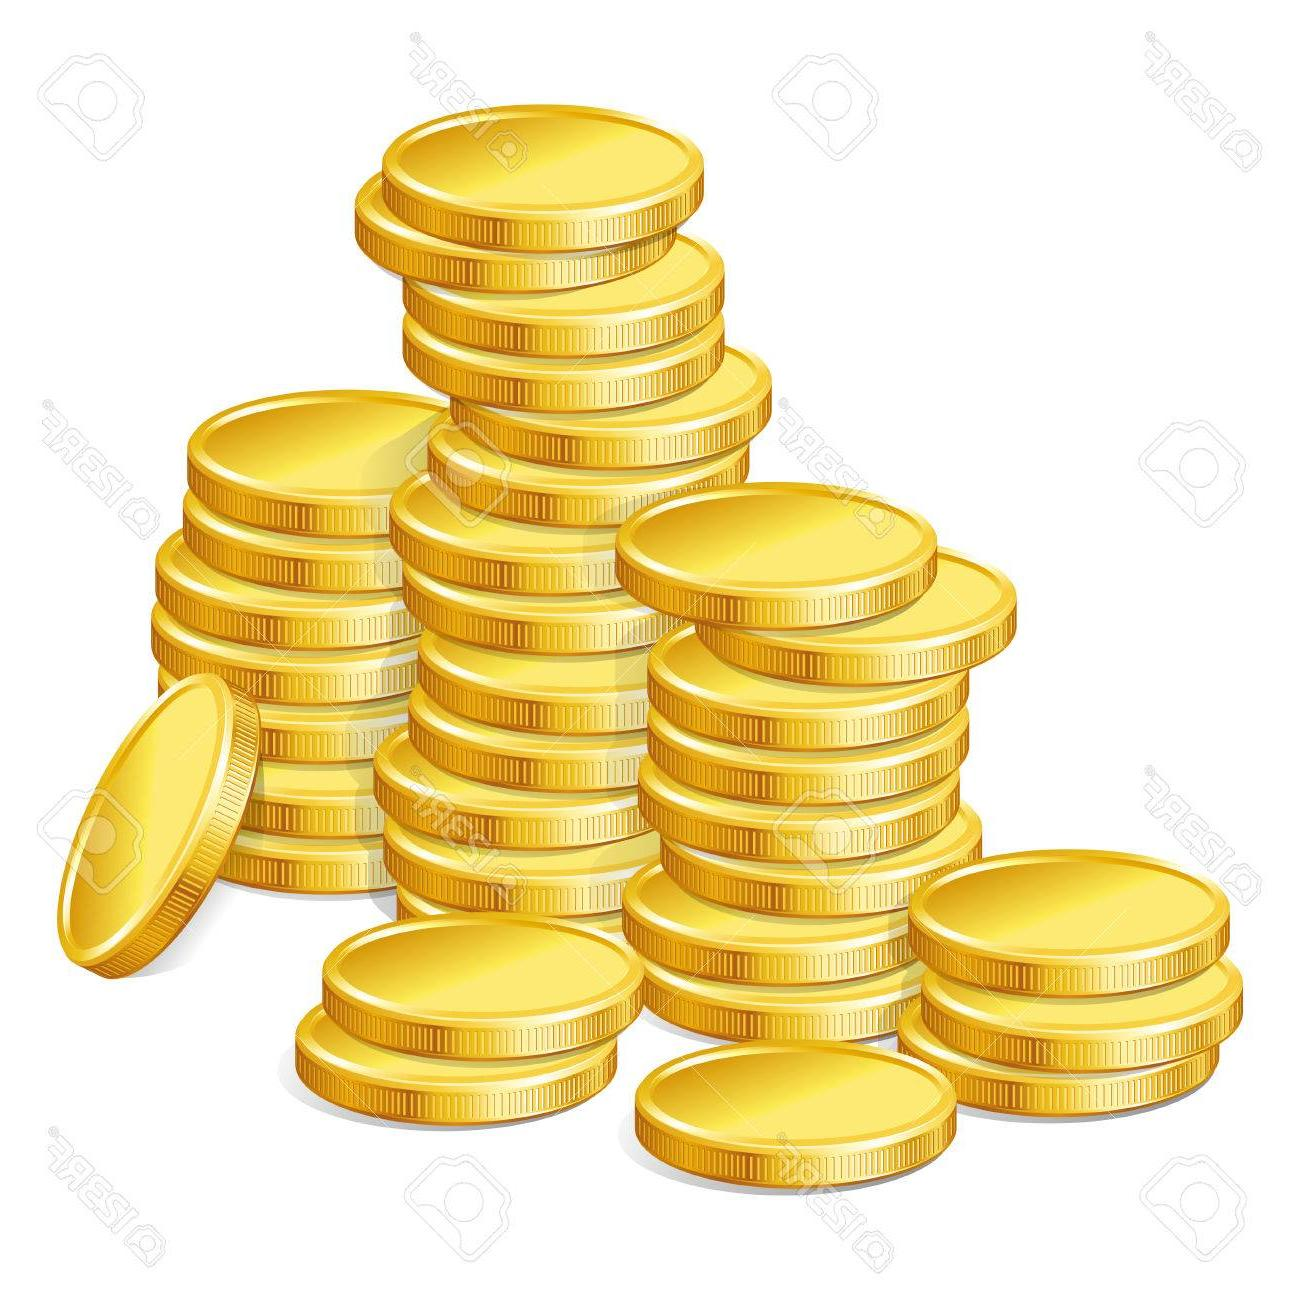 jpg free download Best hd stack of. Gold coins clipart